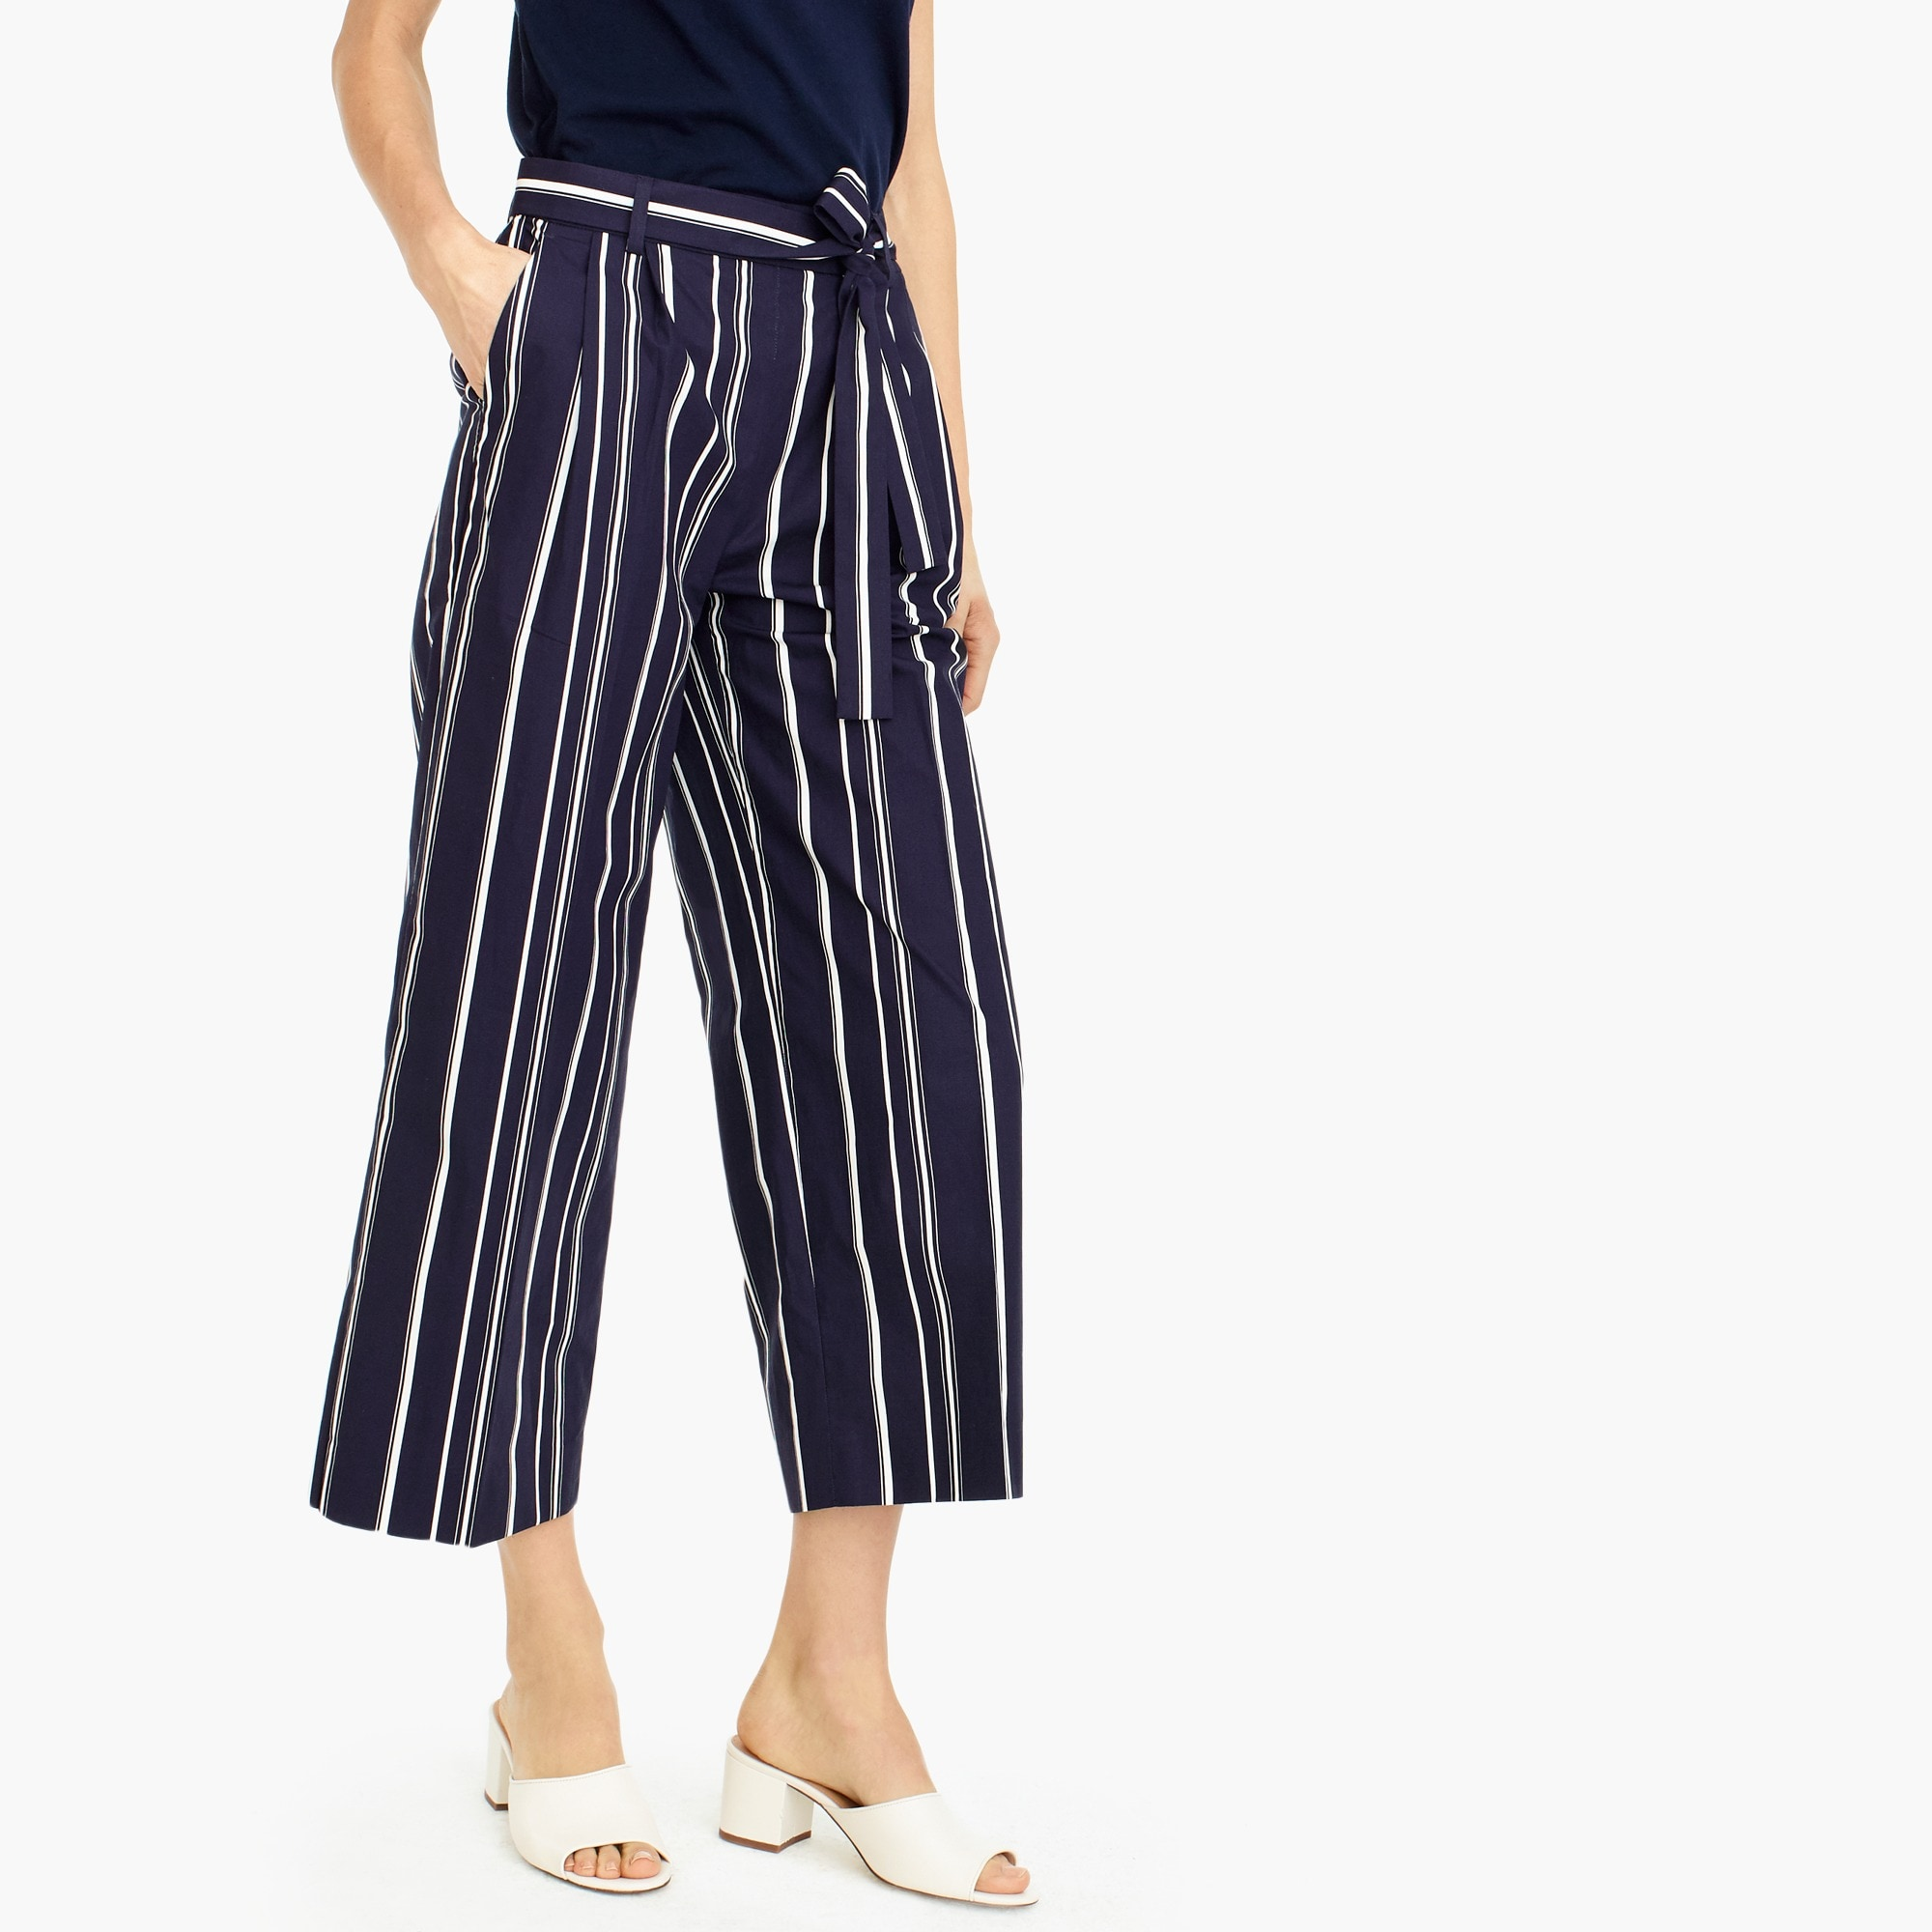 Image 2 for Tall wide-leg cropped pant in stripe